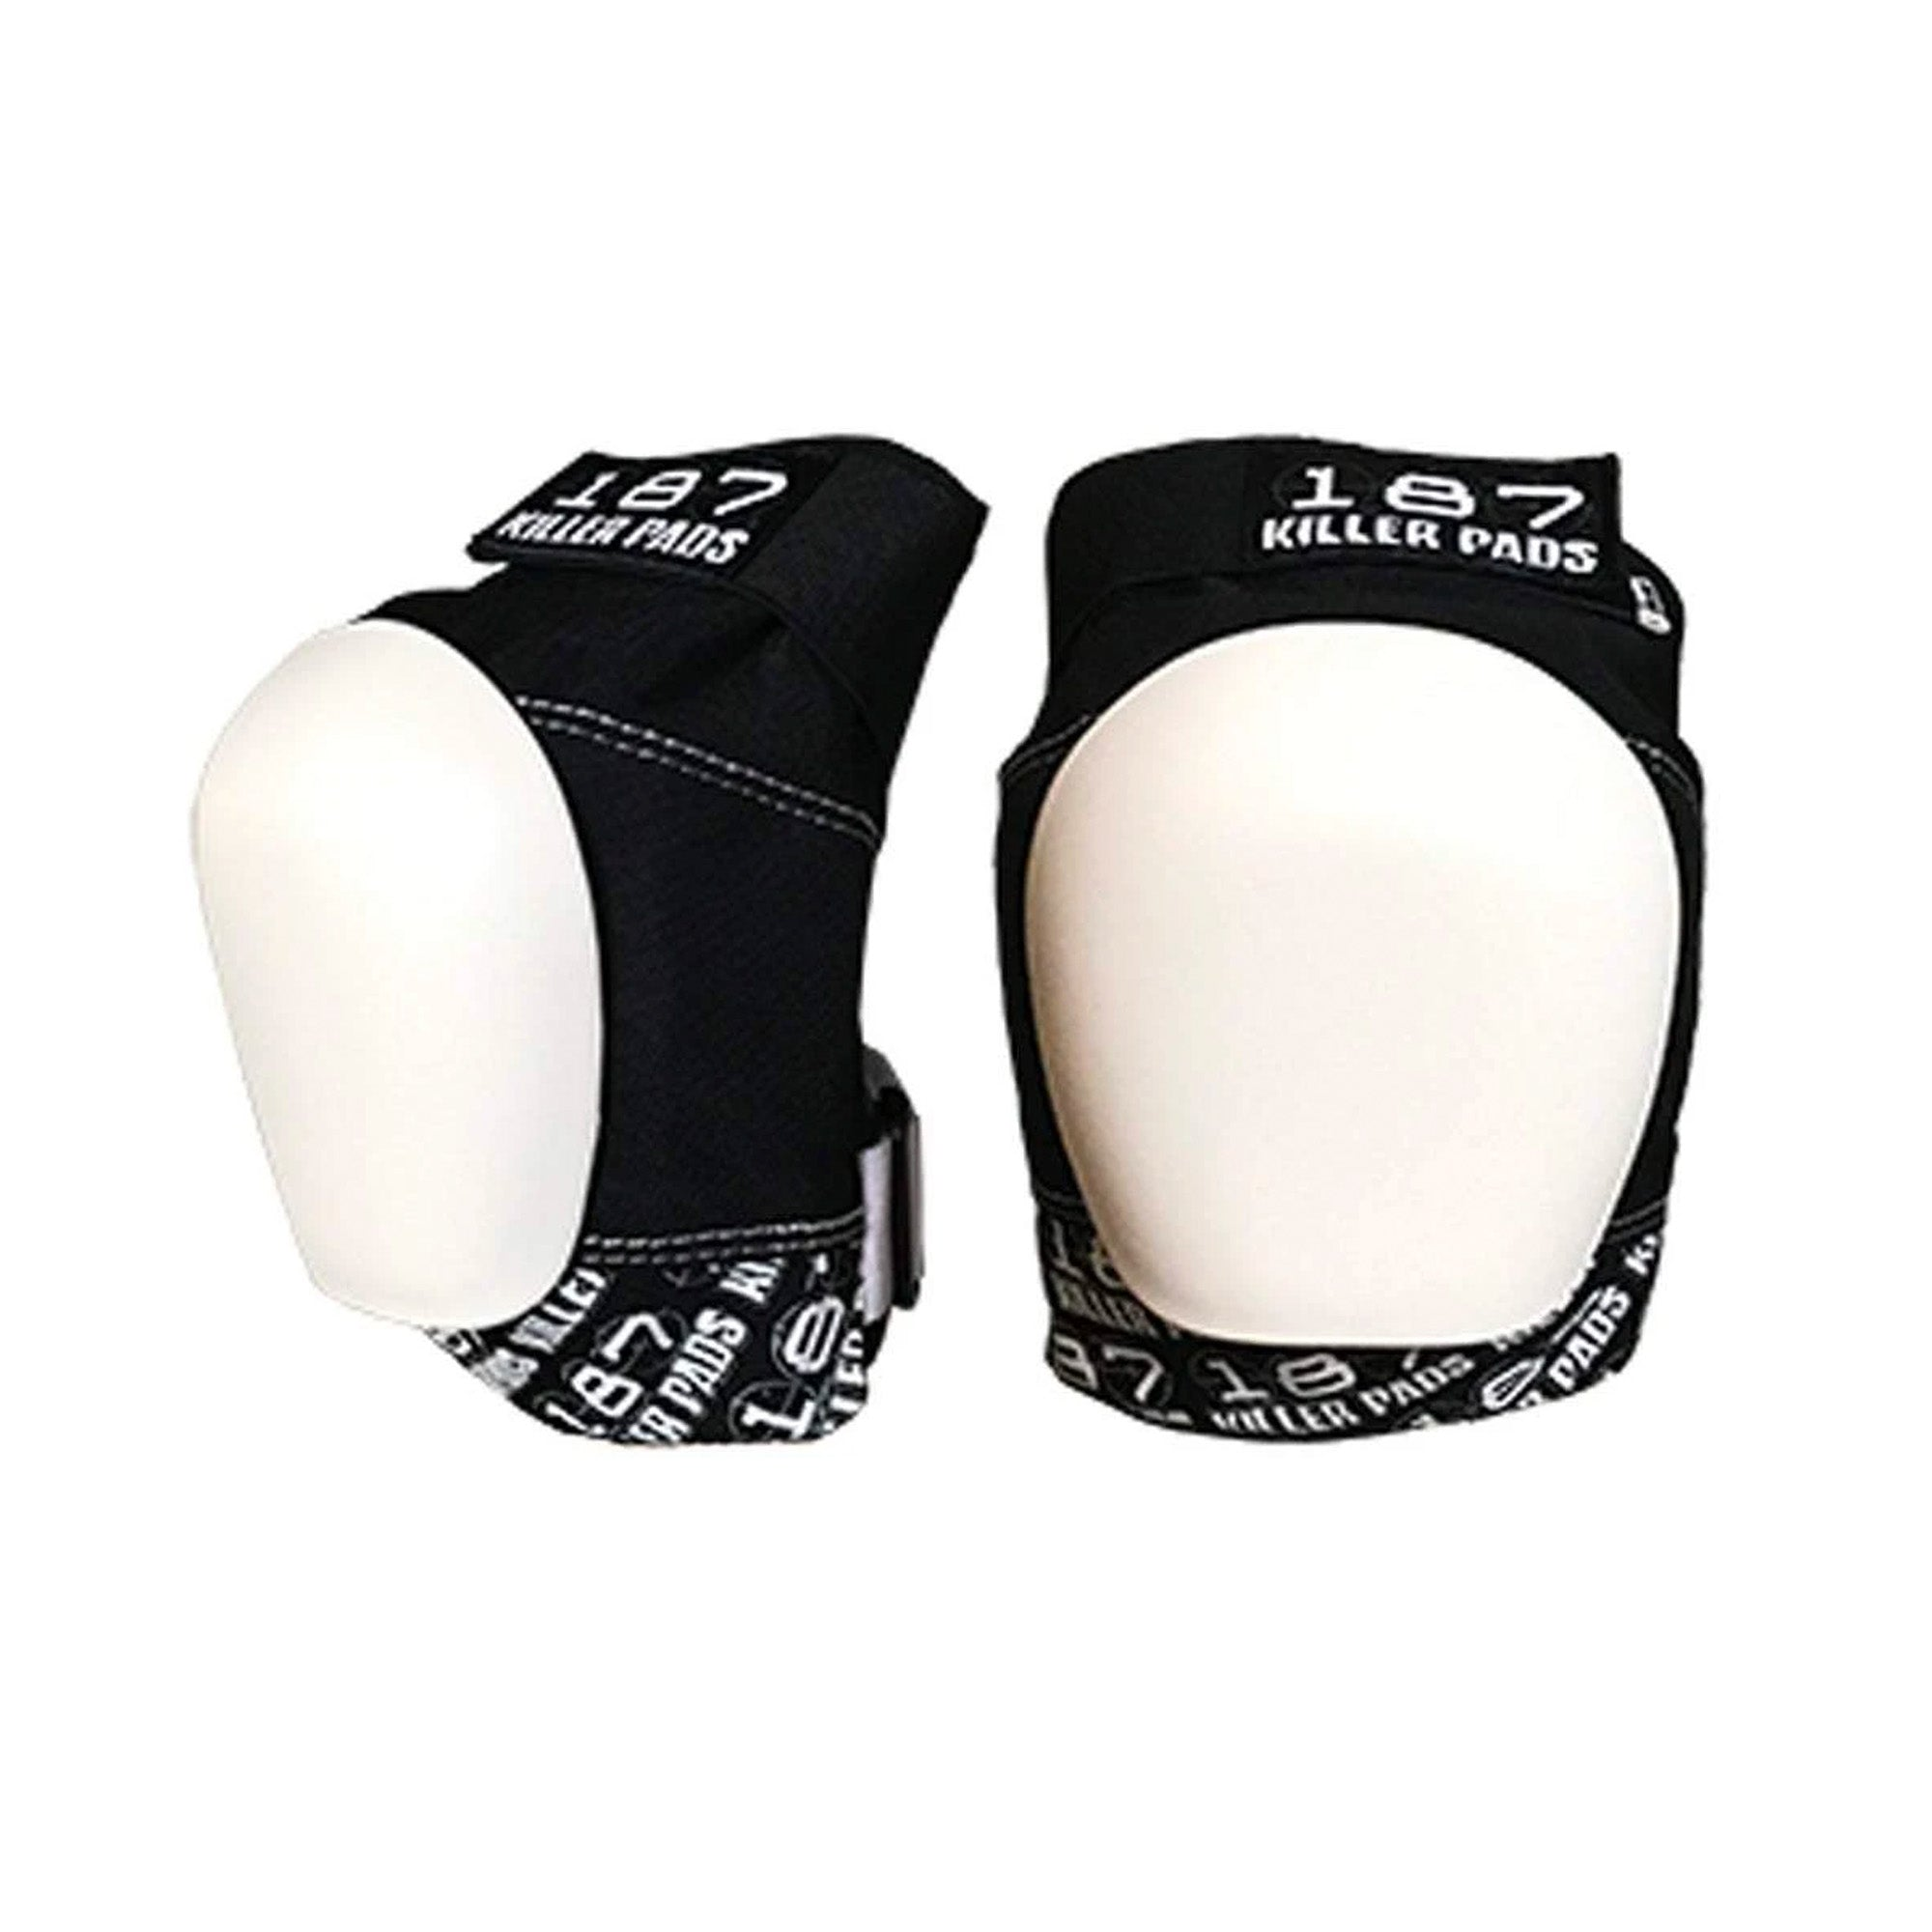 187 Killer Pads Pro Knee Pads - White